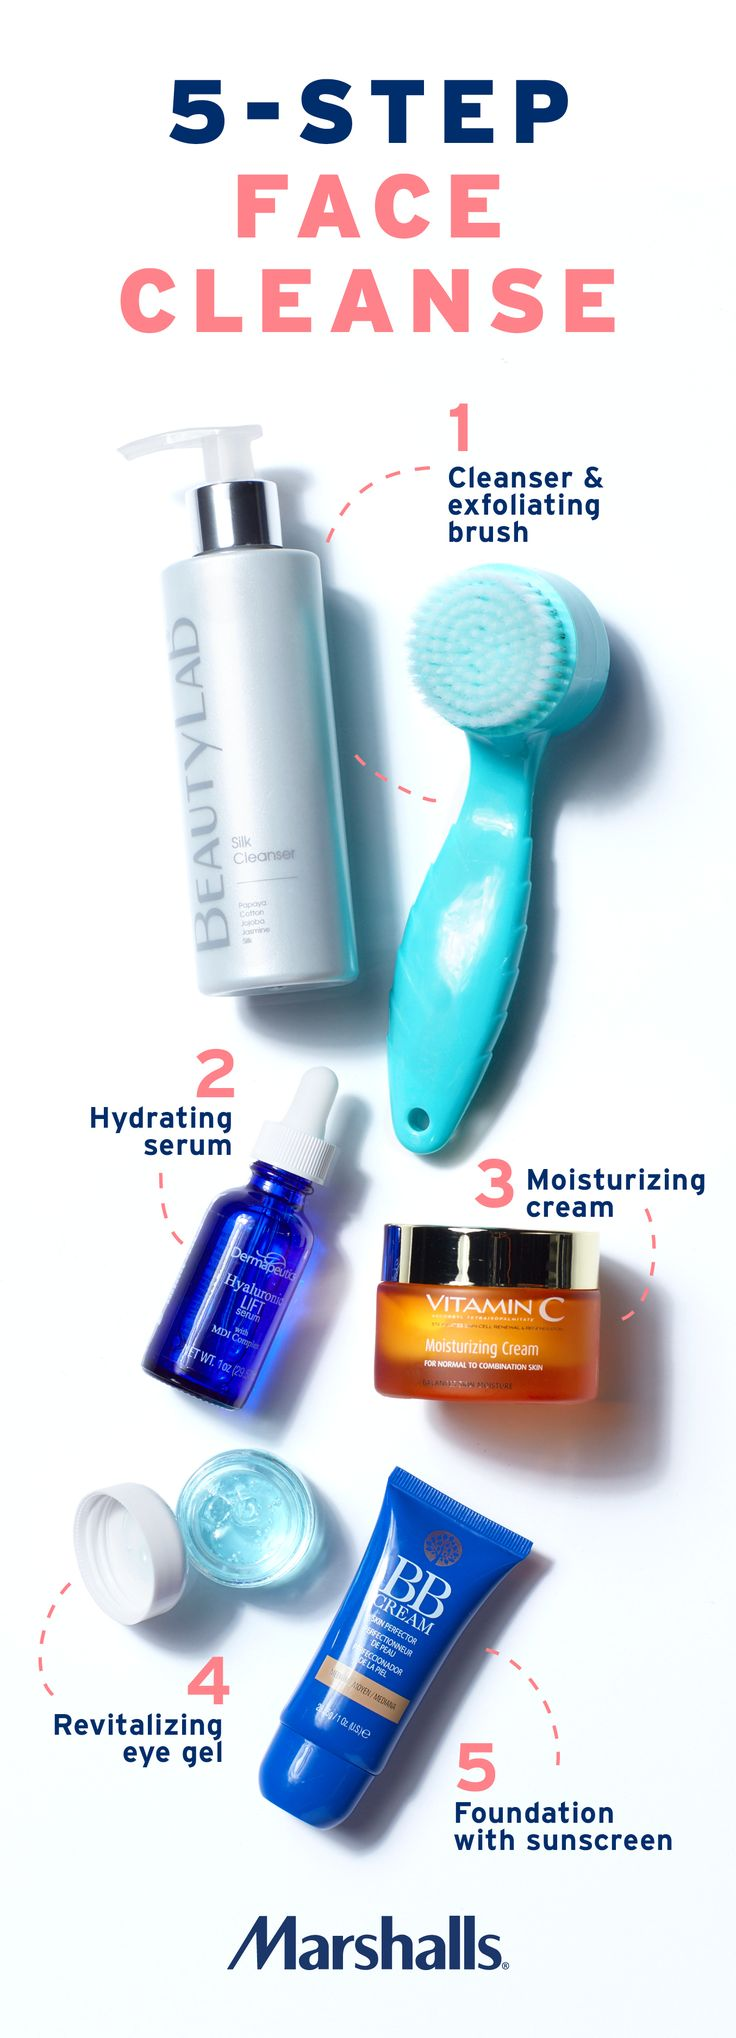 Refresh your beauty routine. Fresh faced in 5 simple steps! 1) Use a silk cleanser and face brush to gently exfoliate your skin. 2) Add hydrating serum. 3) Use moisturizing cream with added Vitamin C. 4) Apply revitalizing eye gel to diminish dark circles and puffiness. 5) Finally, for a healthy glow that protects your skin, add foundation with built-in sunscreen! Visit Marshalls today to build your new beauty routine!